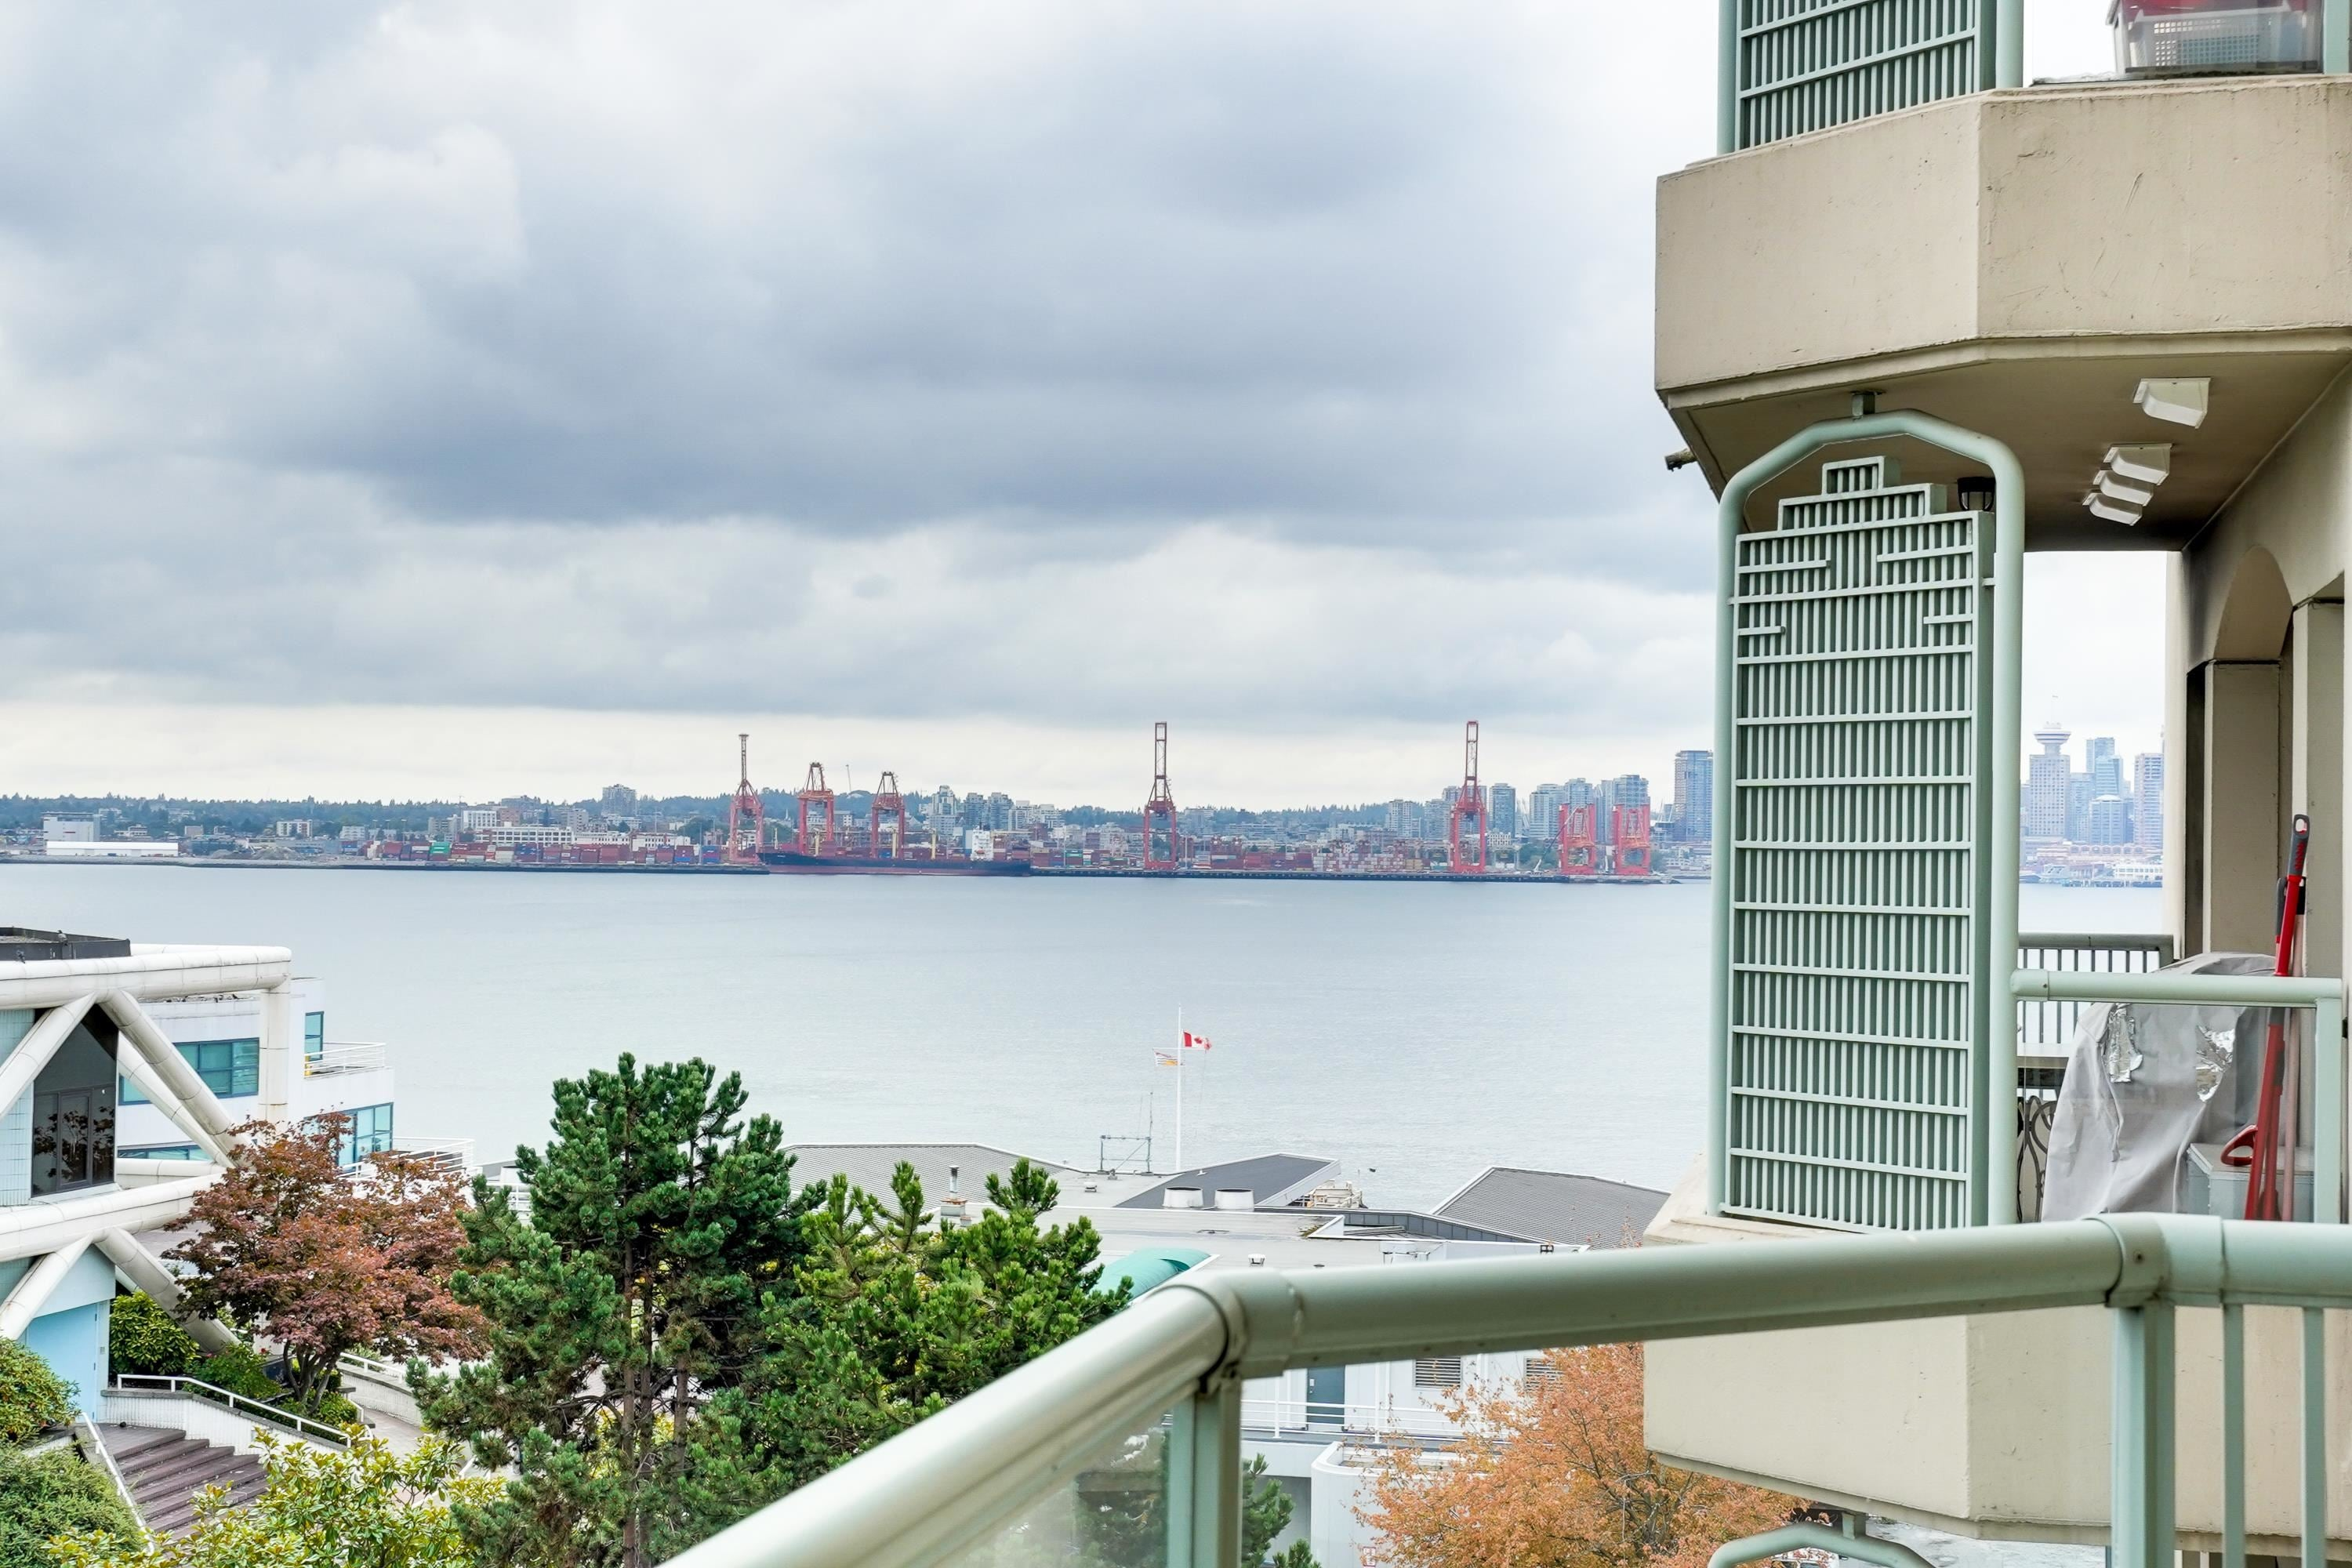 405 168 CHADWICK COURT - Lower Lonsdale Apartment/Condo for sale, 3 Bedrooms (R2619951) - #23